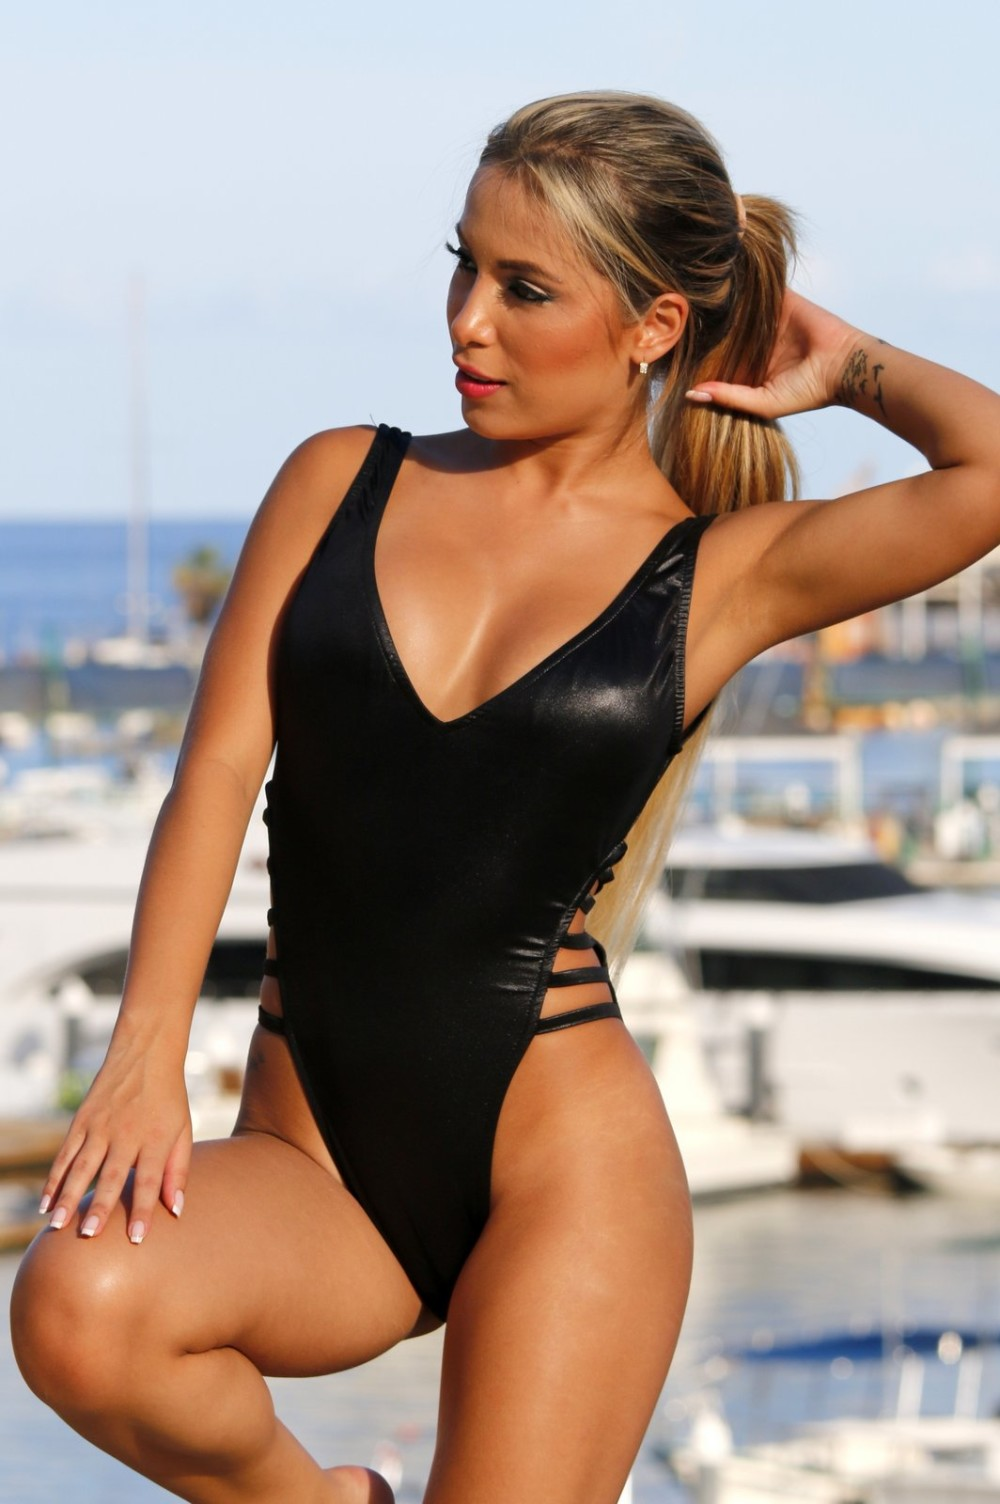 e22e10ee502e6 UjENA Strappy Slick High Cut One Piece Swimsuit. FREE Shipping ...